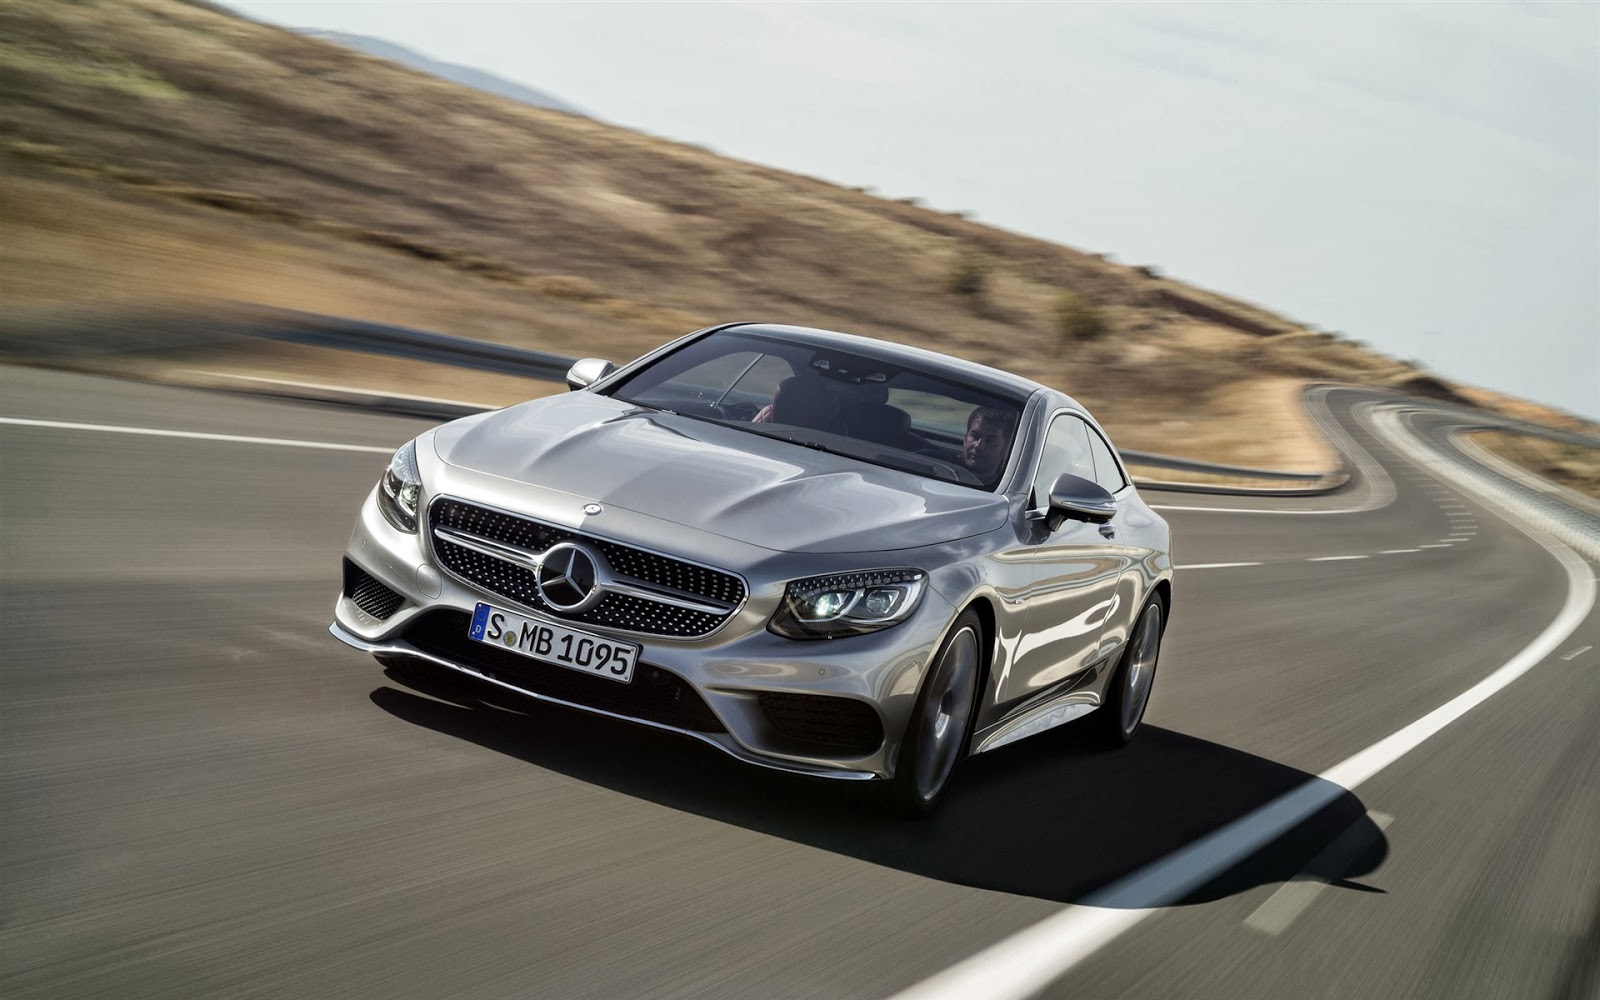 2015 mercedes benz s class coupe mystery wallpaper for New mercedes benz s class 2015